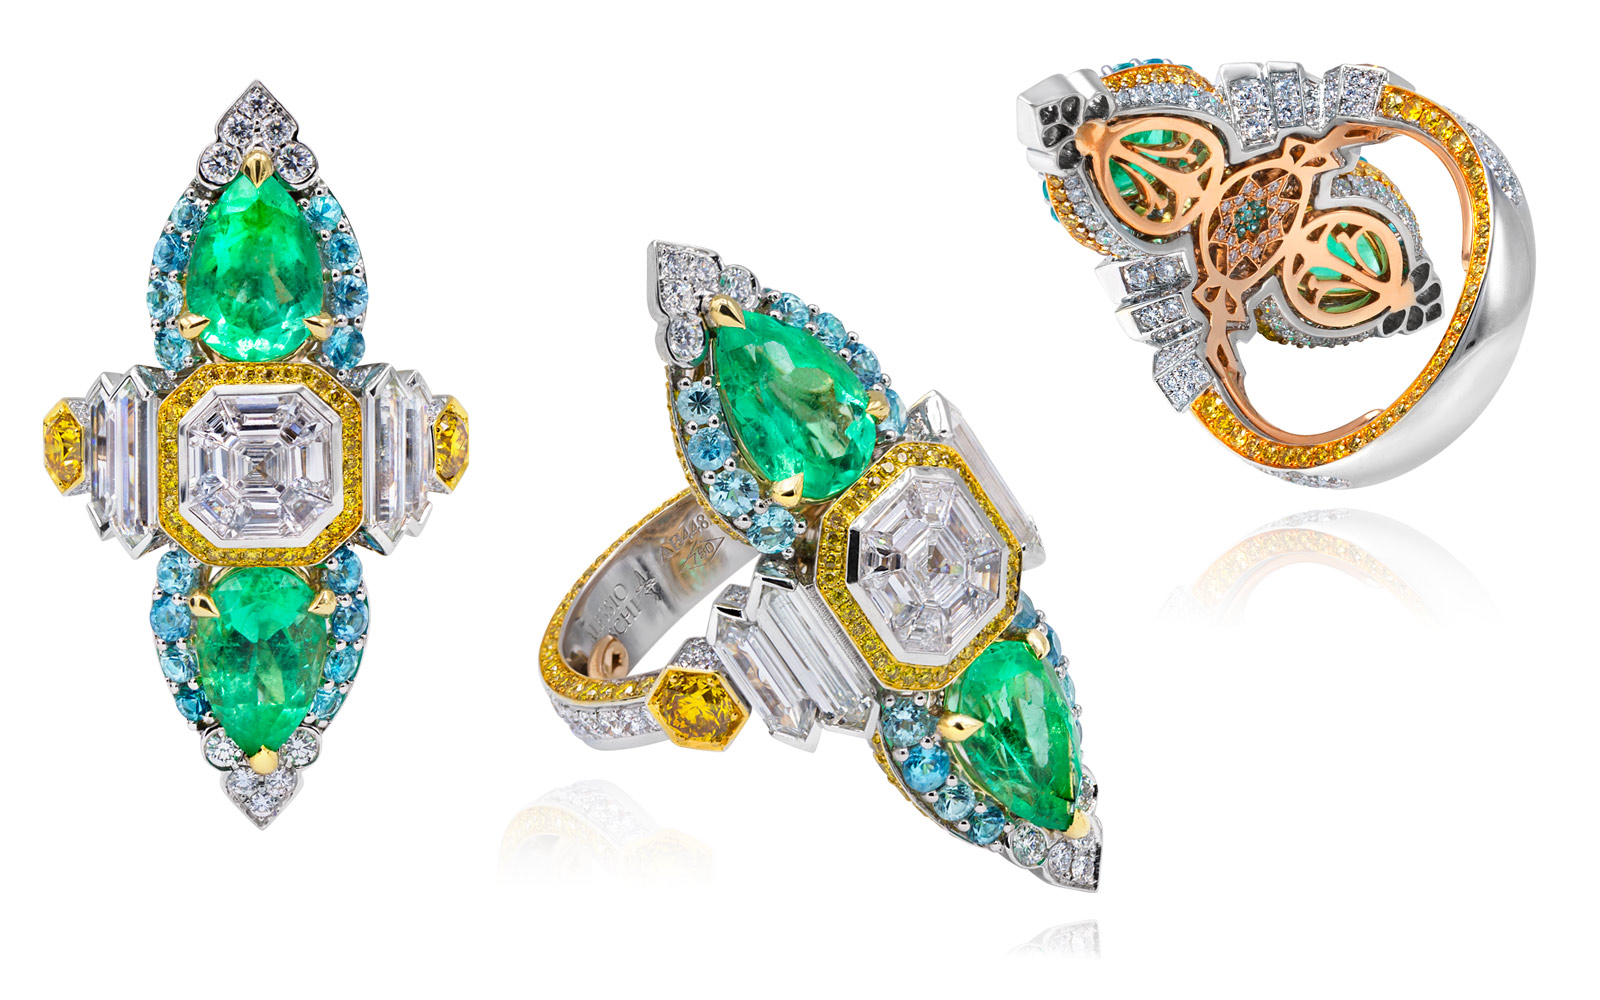 Alessio Boschi Peacock Dance ring with emeralds, diamonds and Paraiba tourmalines